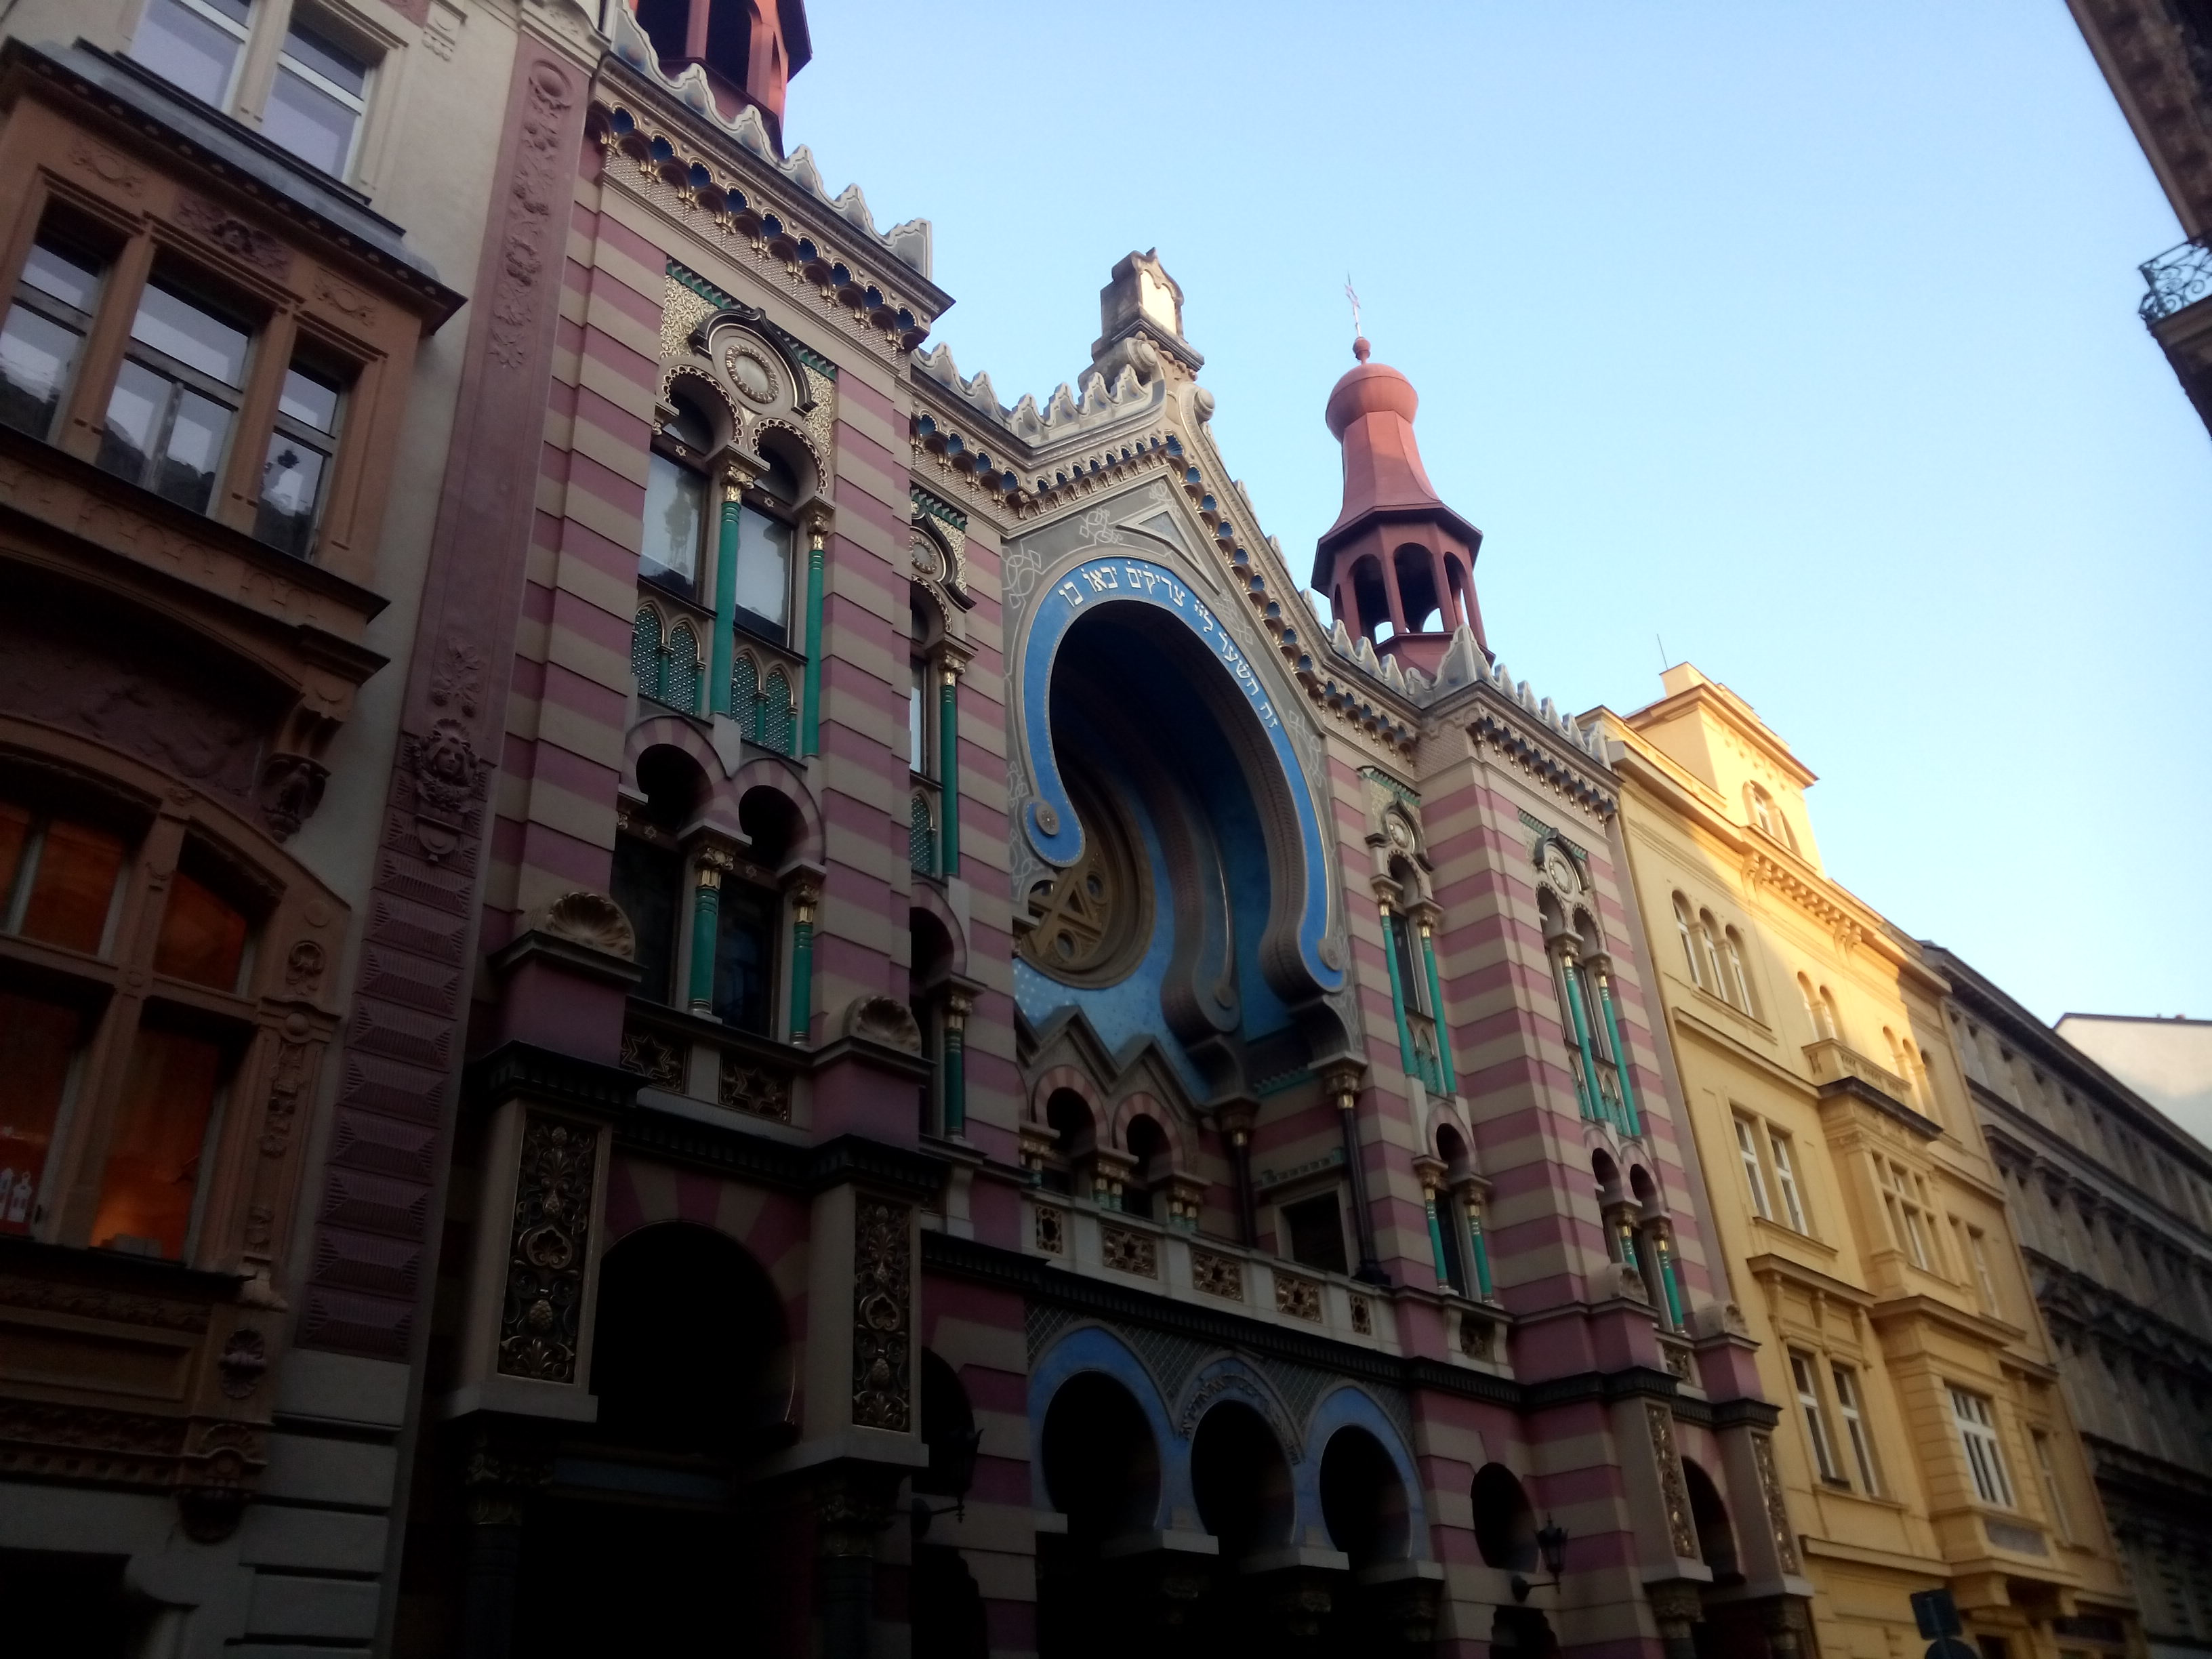 A pink and beige striped building with fancy edges and blue circular paintwork in the middle